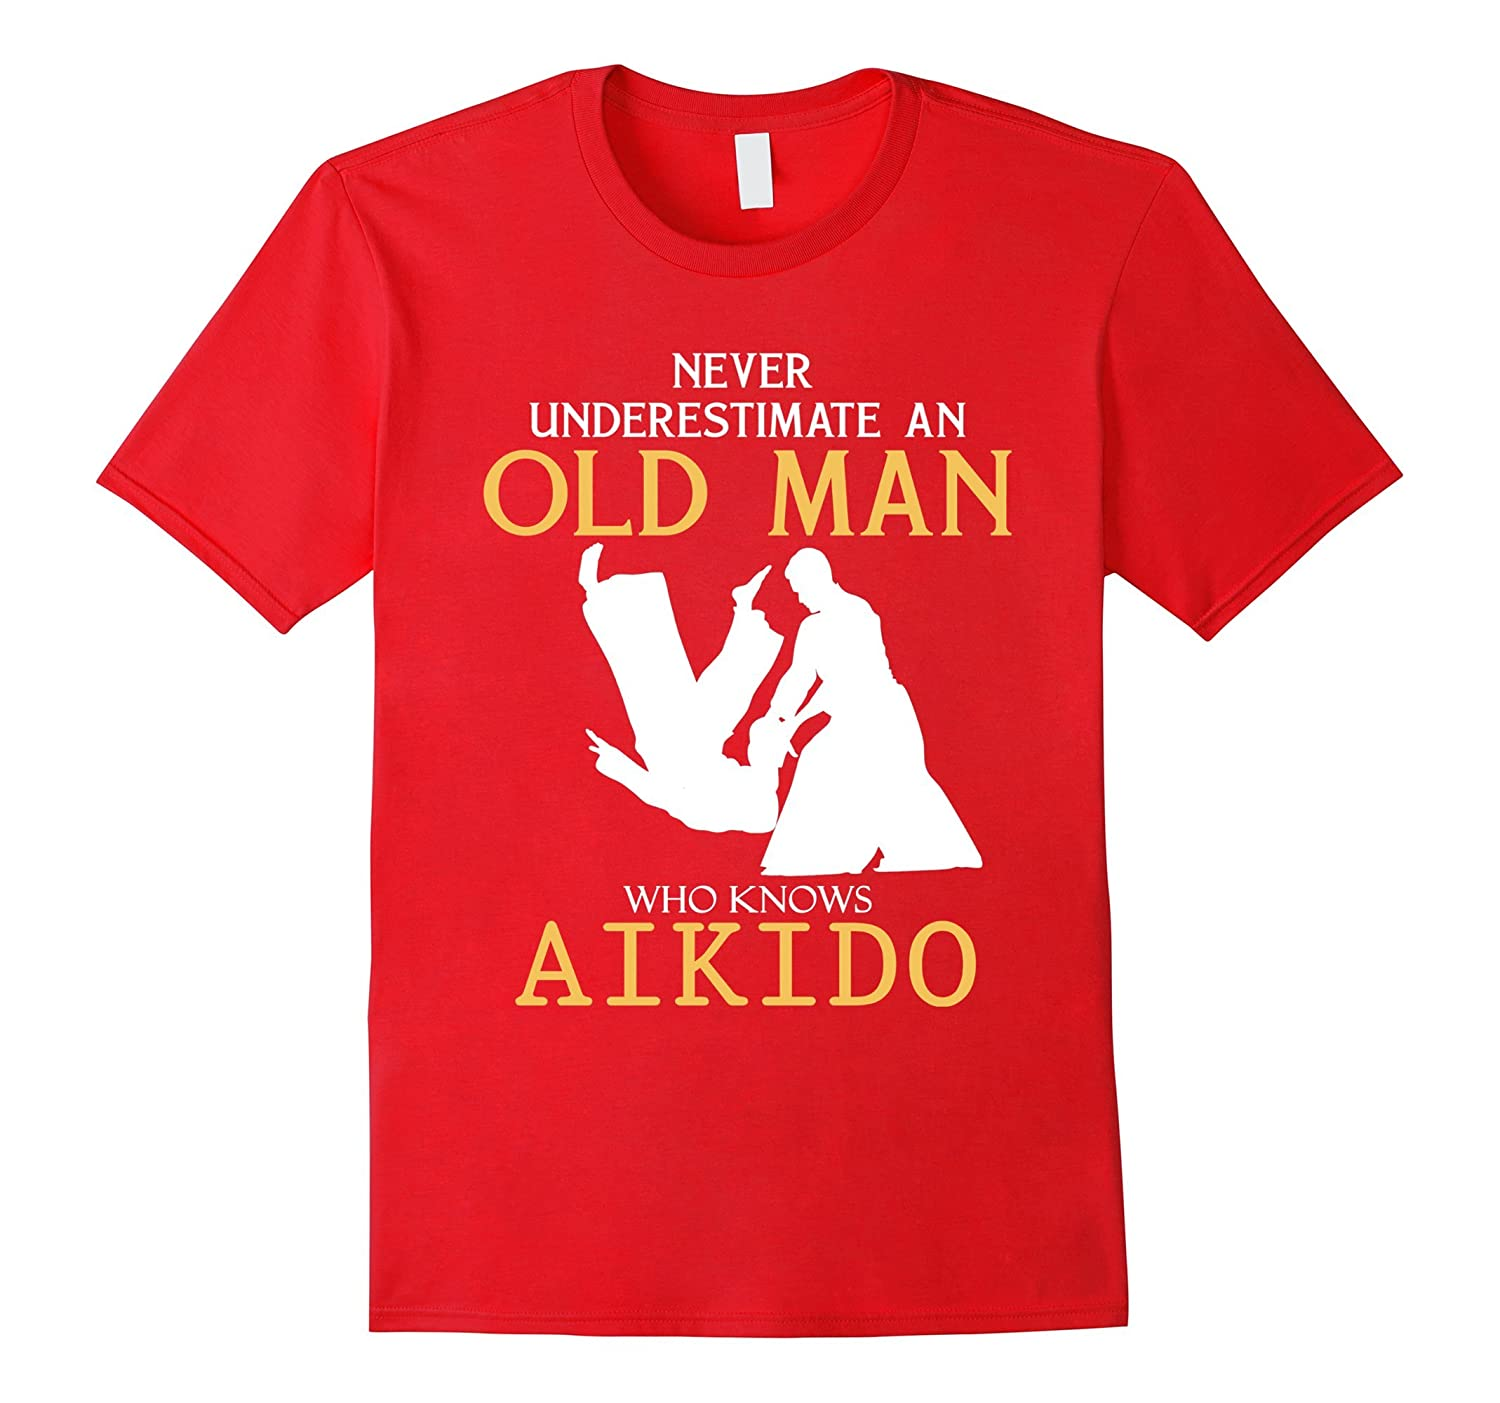 Never Underestimate an Old Man who knows Aikido t shirts-BN